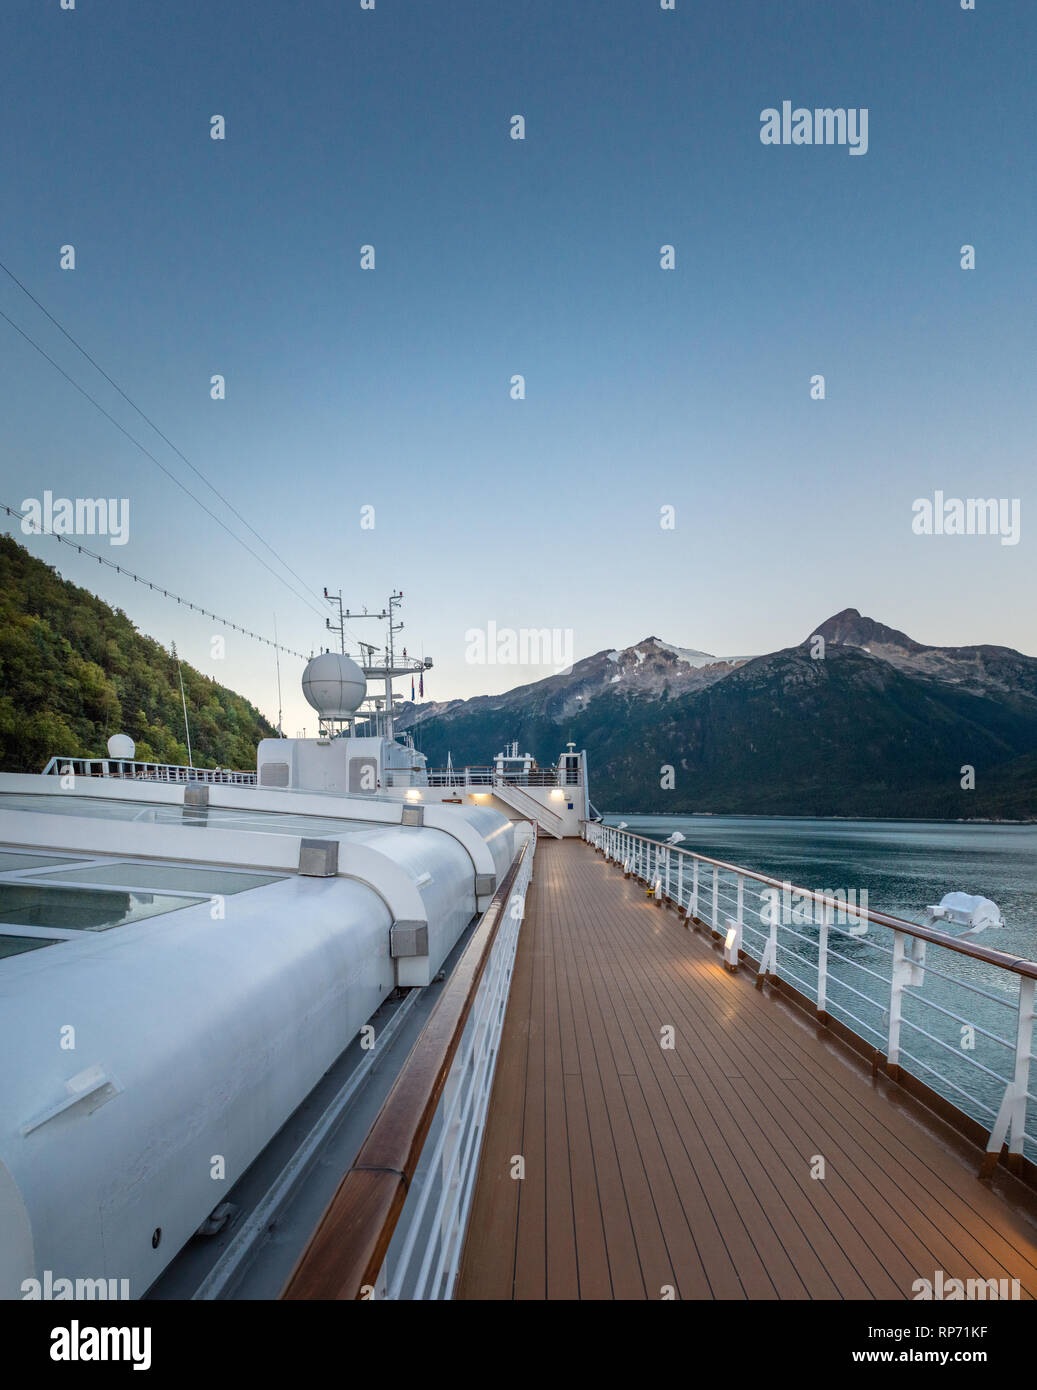 September 15, 2018 - Skagway, AK: Sports deck of Holland America's The Volendam, while docking at port in the early morning in Taiya Inlet. - Stock Image